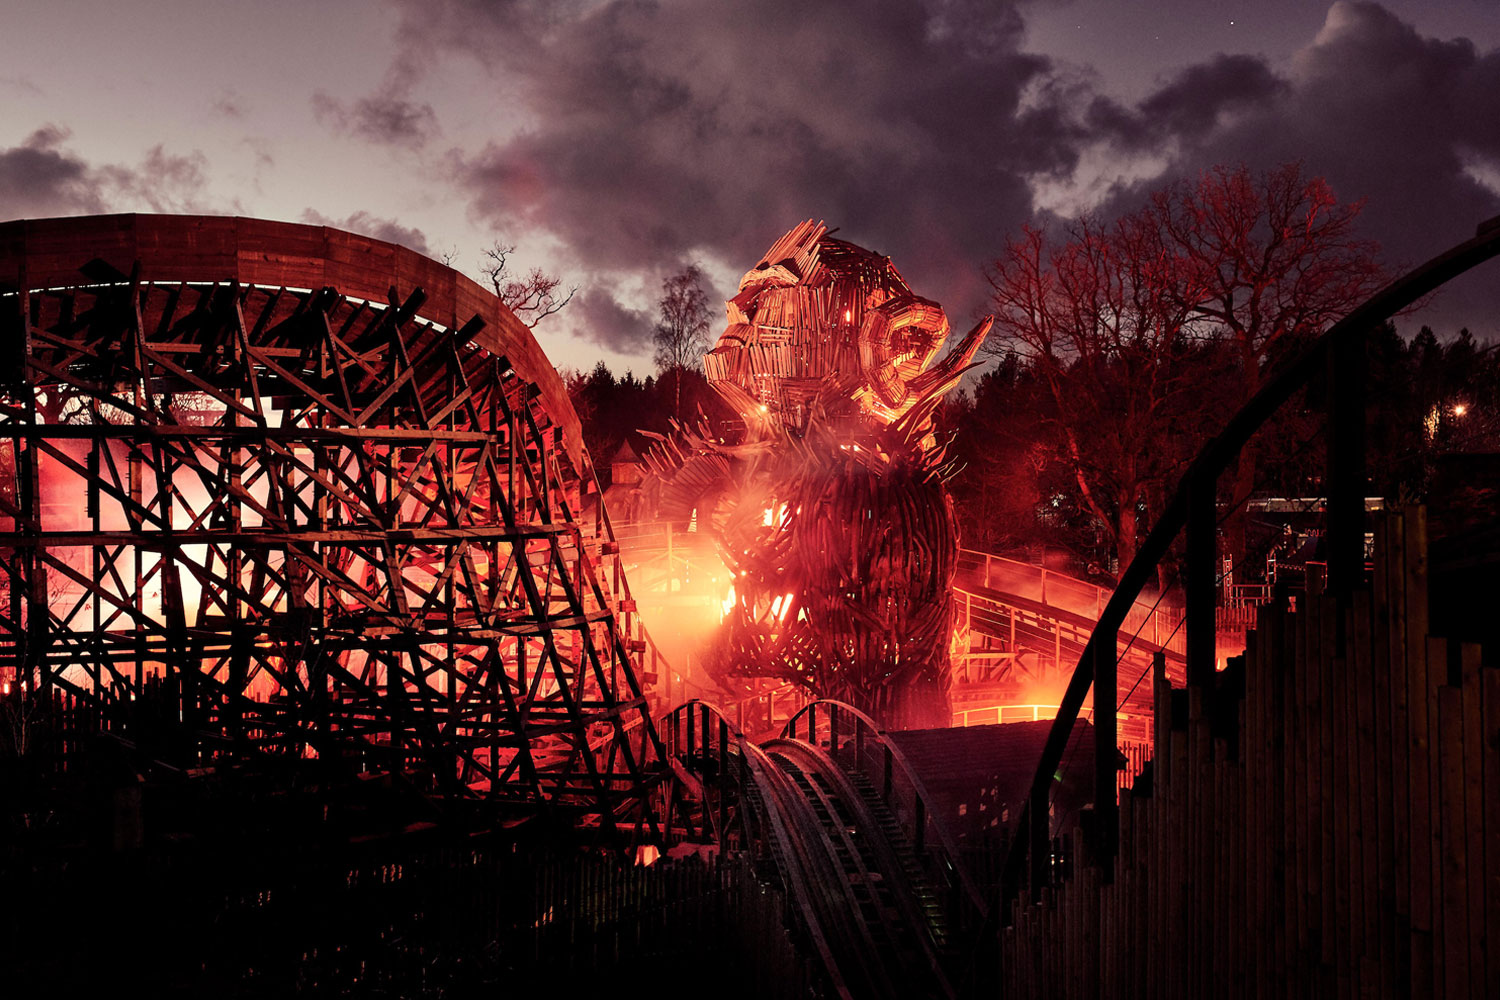 Introducing Wicker Man at Alton Towers